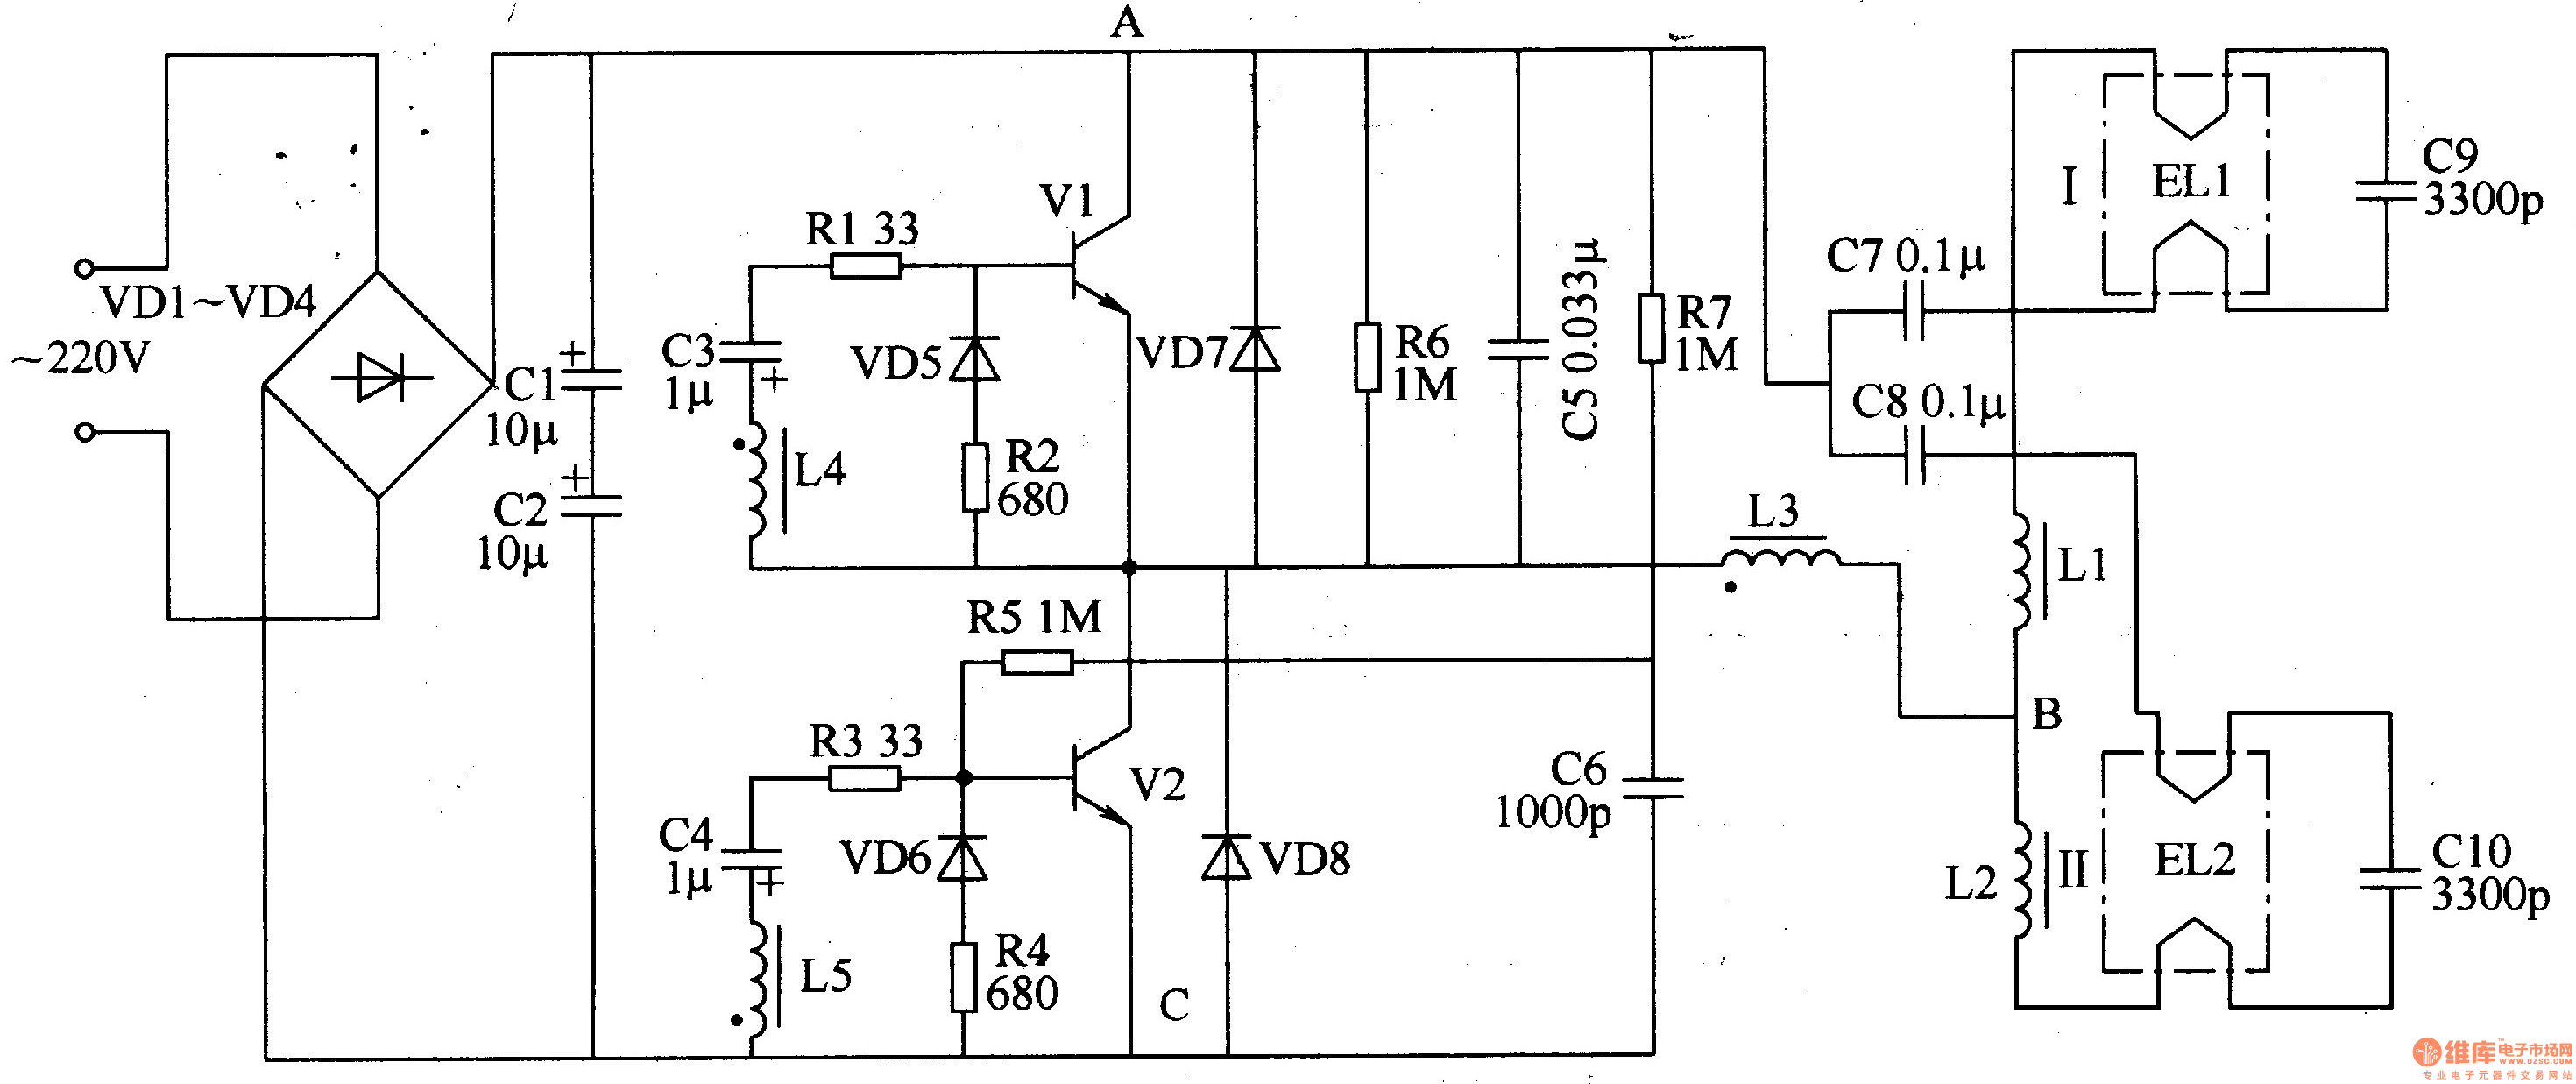 Lovely Wiring Diagram Fluorescent Light Switch Diagrams